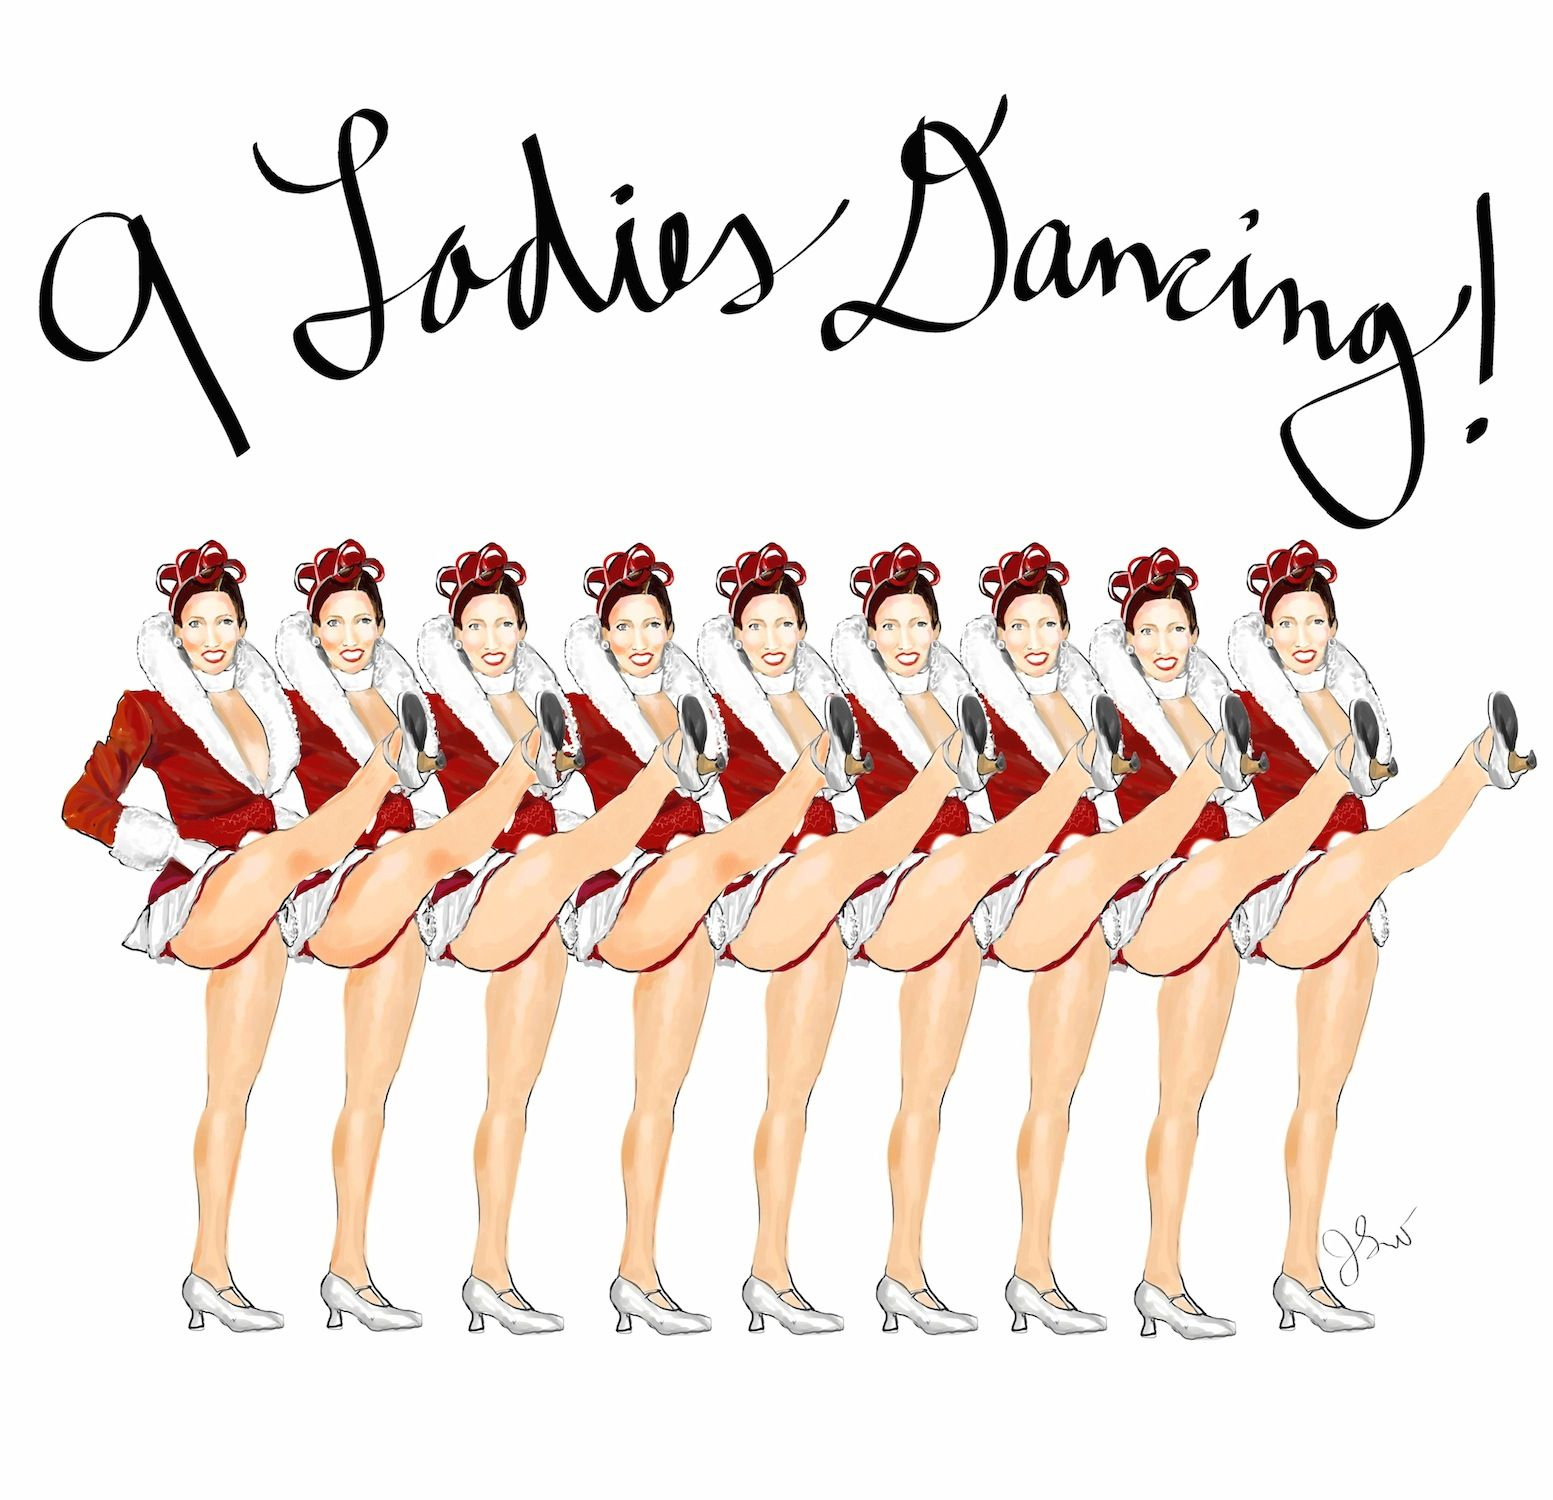 small resolution of from thefrancofly com s 12 days of christmas 9 ladies dancing radio city rockettes humor christmas carol